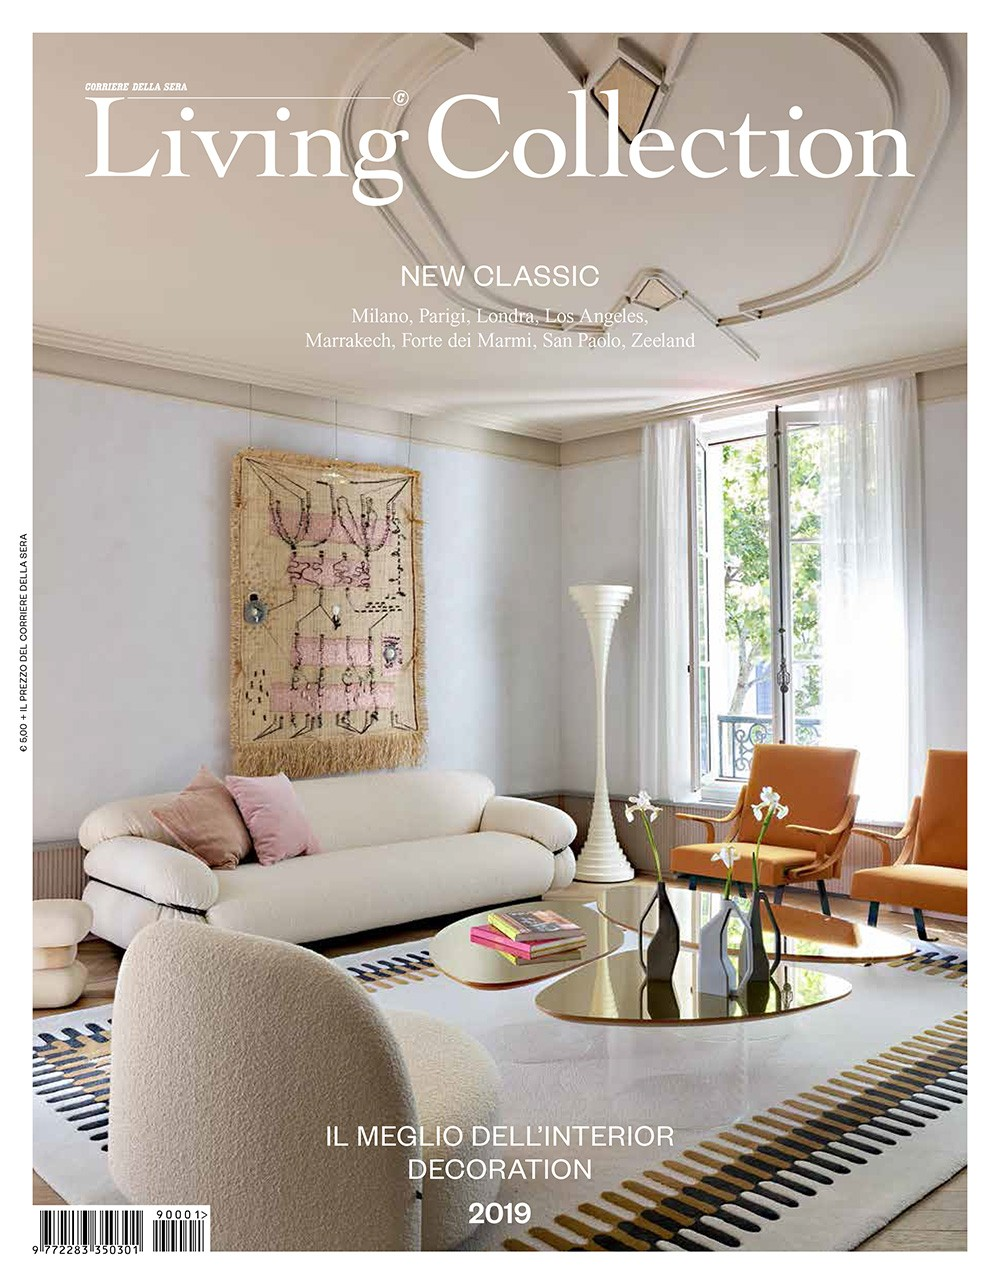 LivingCOLLECTION_Marcante Testa-1